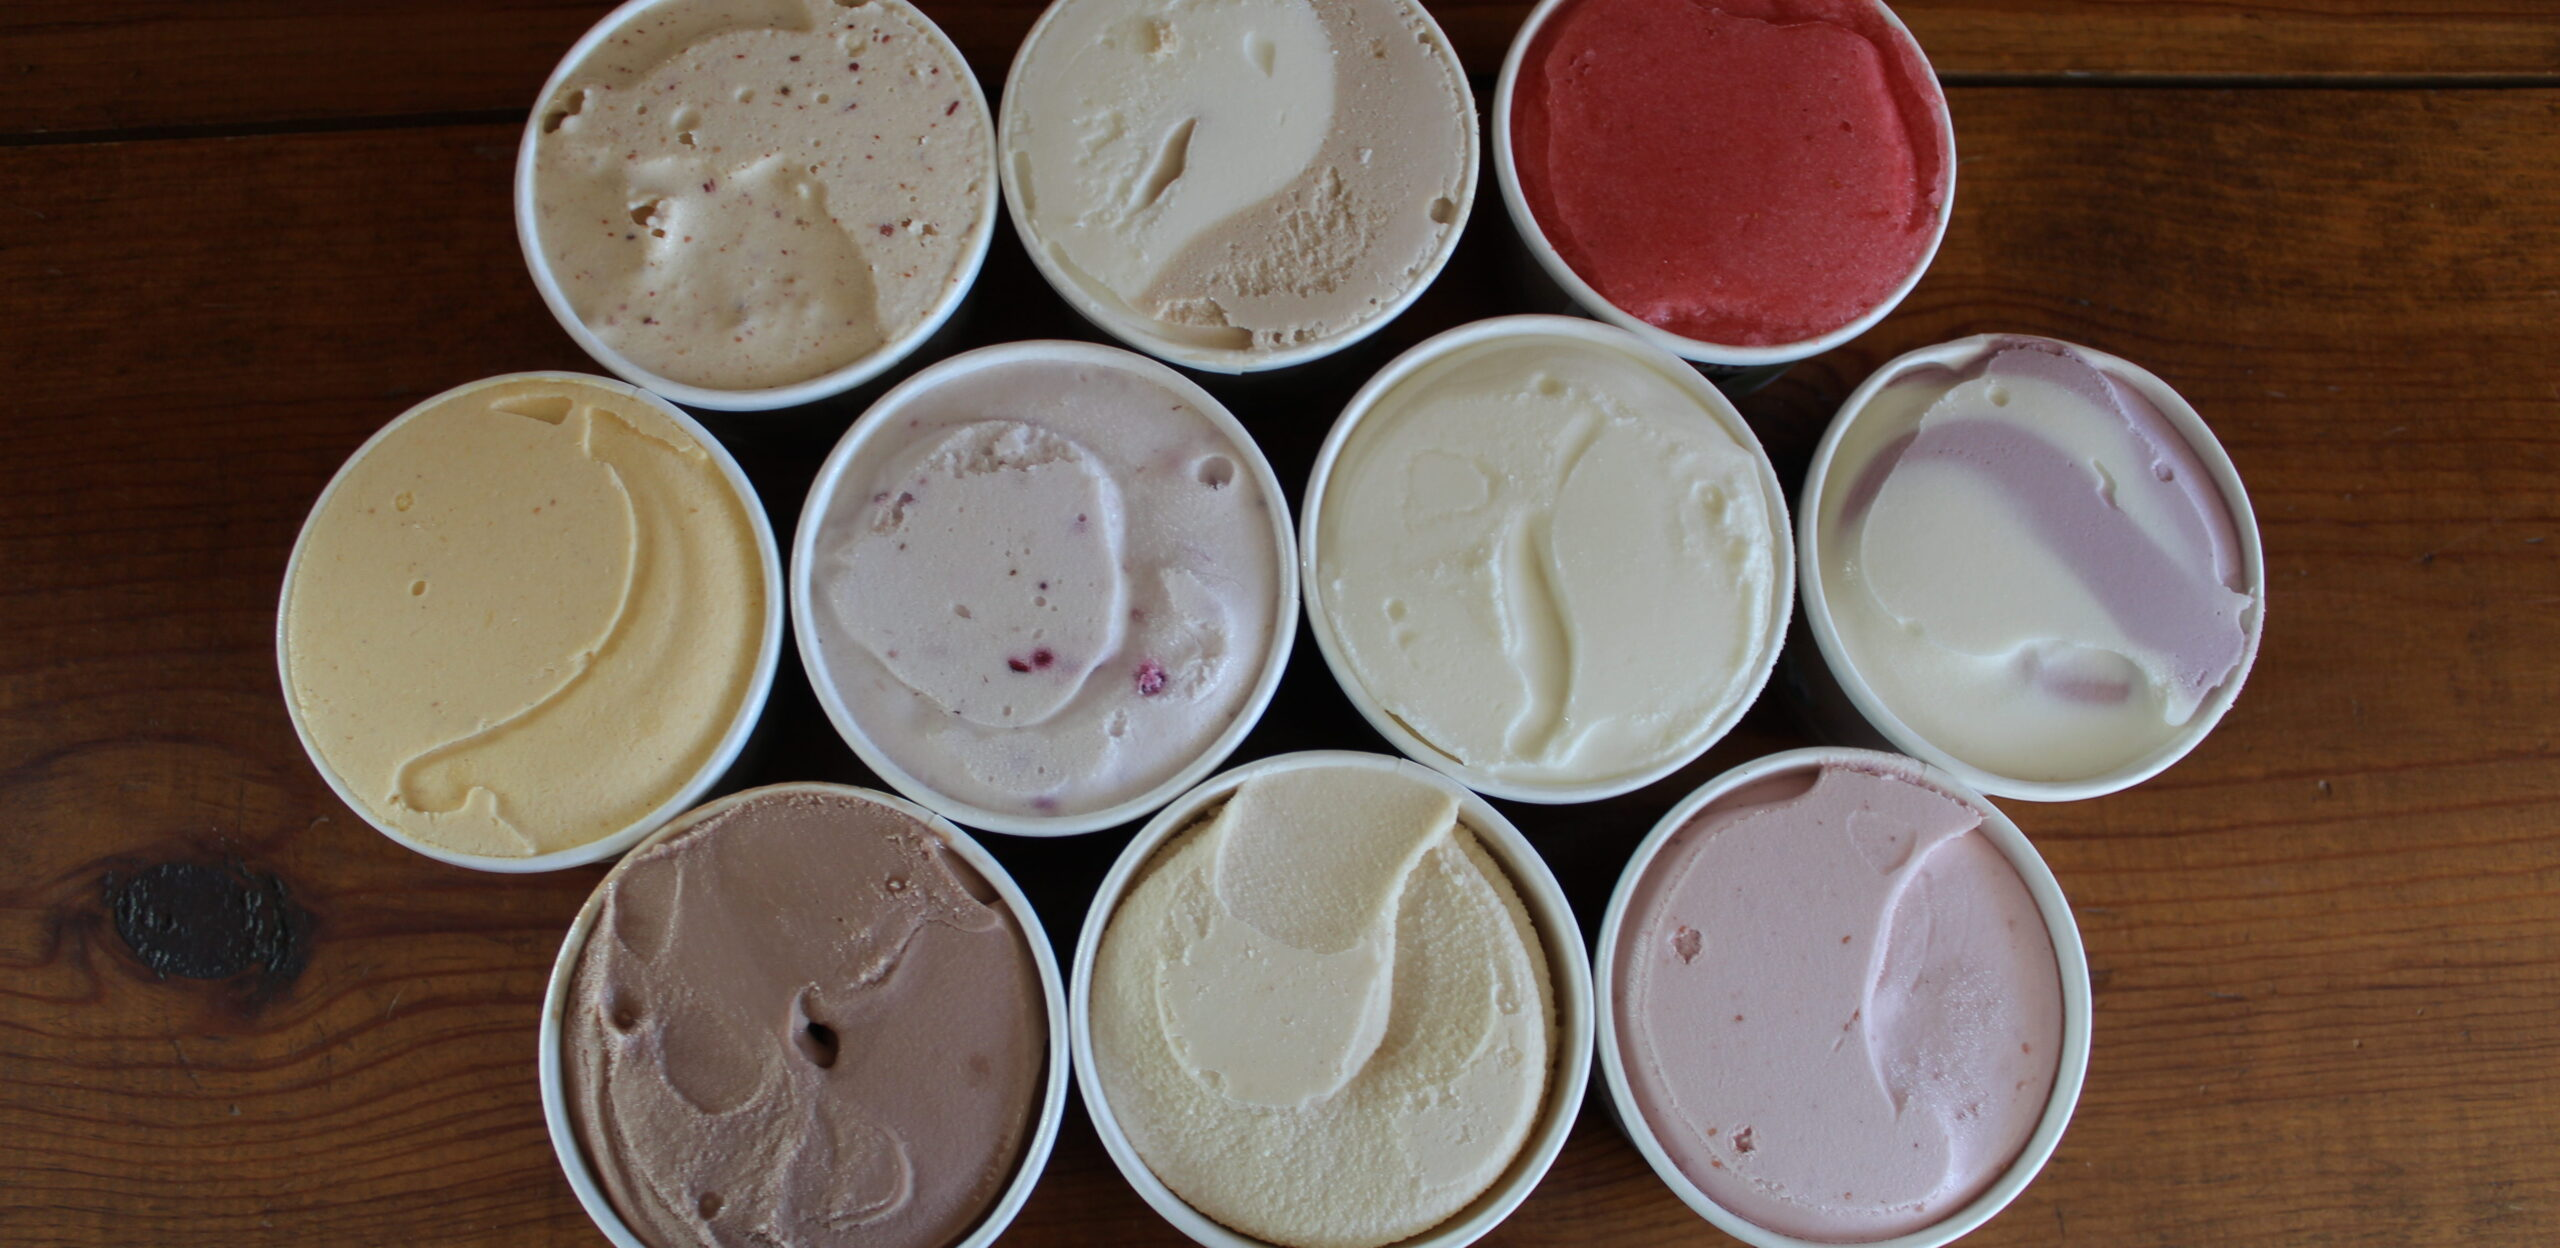 Honey Ice Cream Flavors